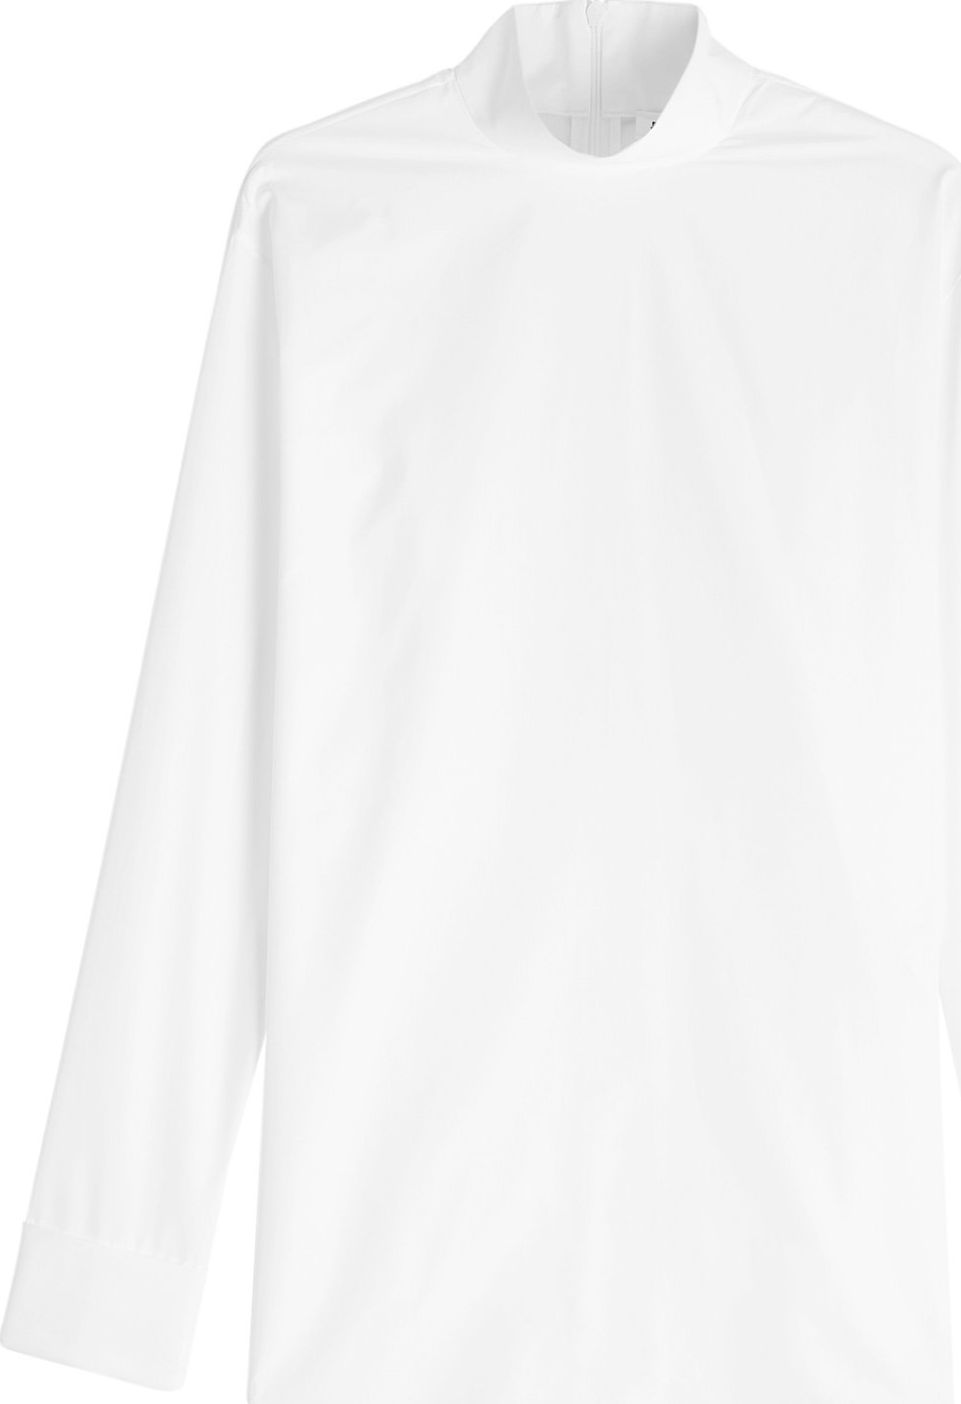 Jil Sander - Cotton Blouse